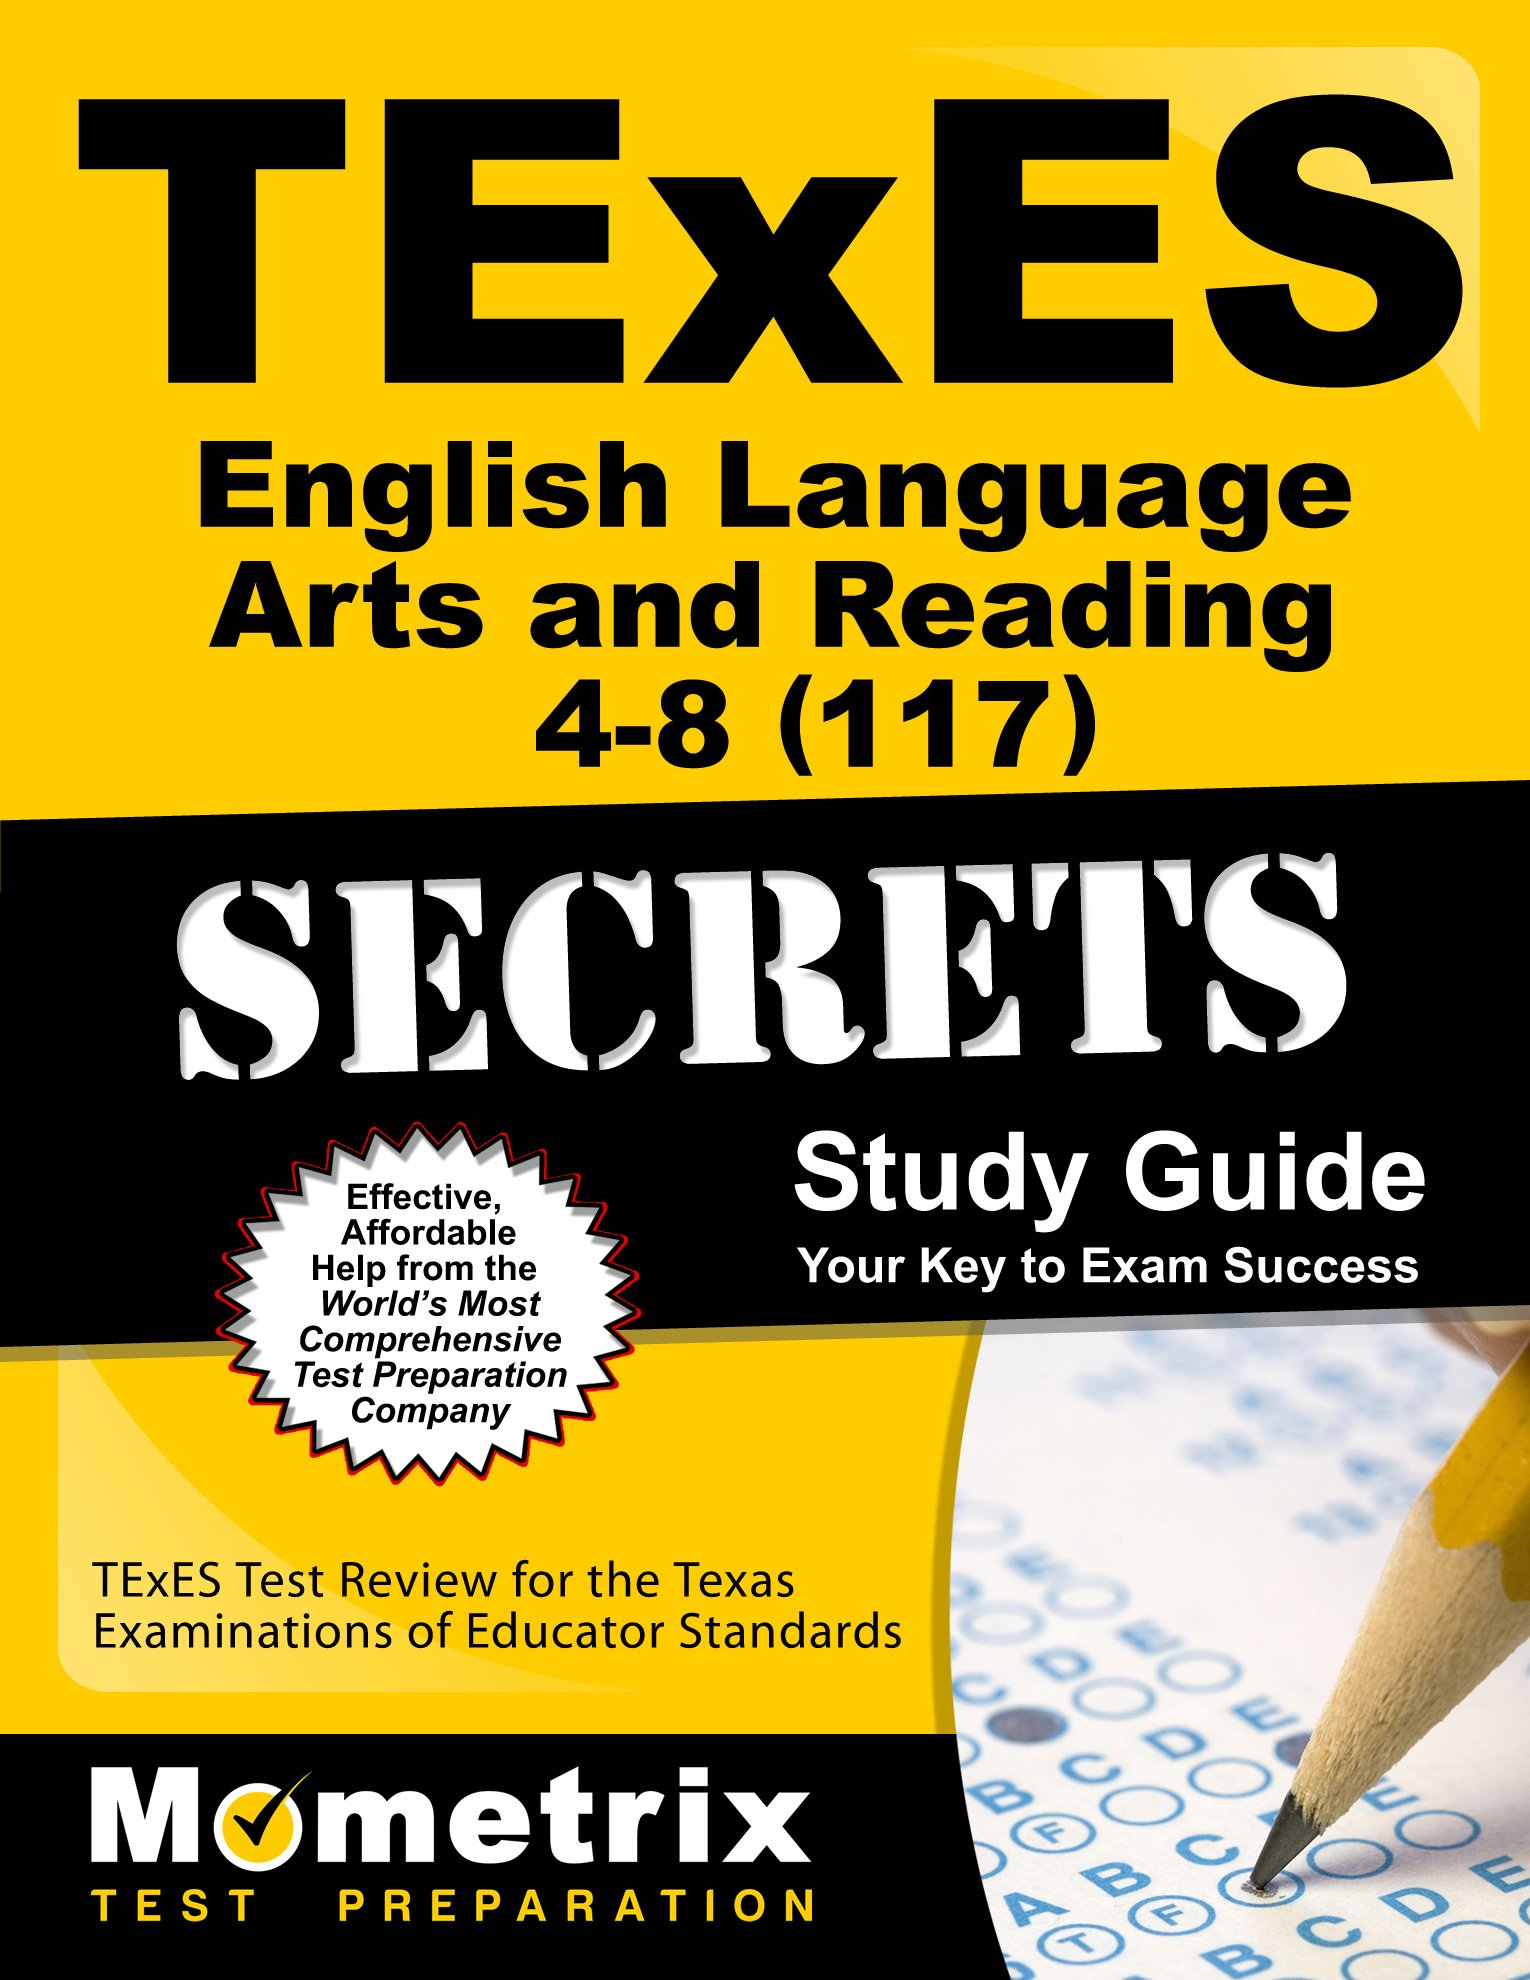 TExES English Language Arts and Reading 4-8 (117) Secrets Study Guide: TExES Test Review for the Texas Examinations of Educator Standards (Mometrix Secrets Study Guides) by Mometrix Media LLC